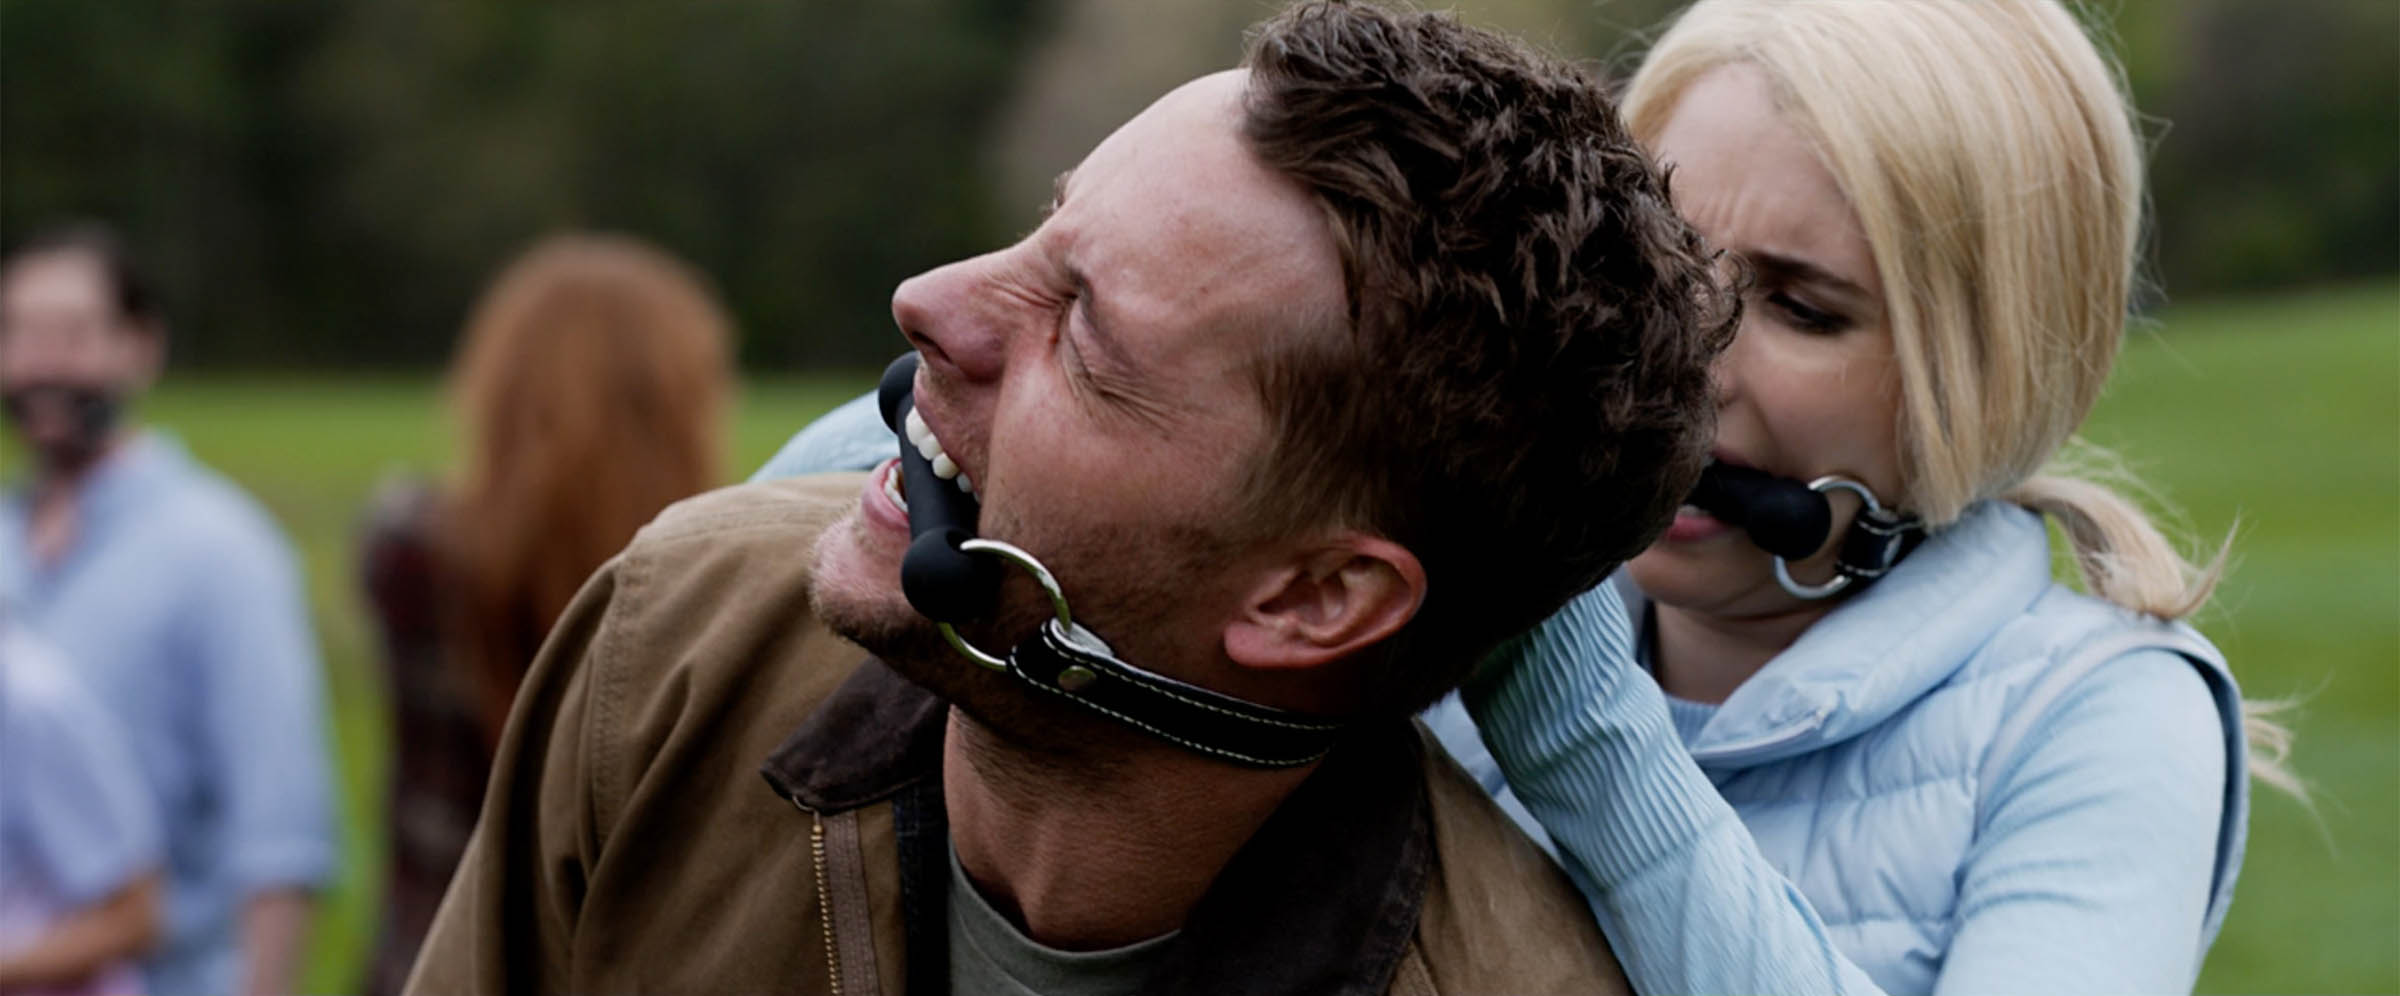 A man wearing a gag appears to be in pain while a woman wearing a similar gag stands close behind him.